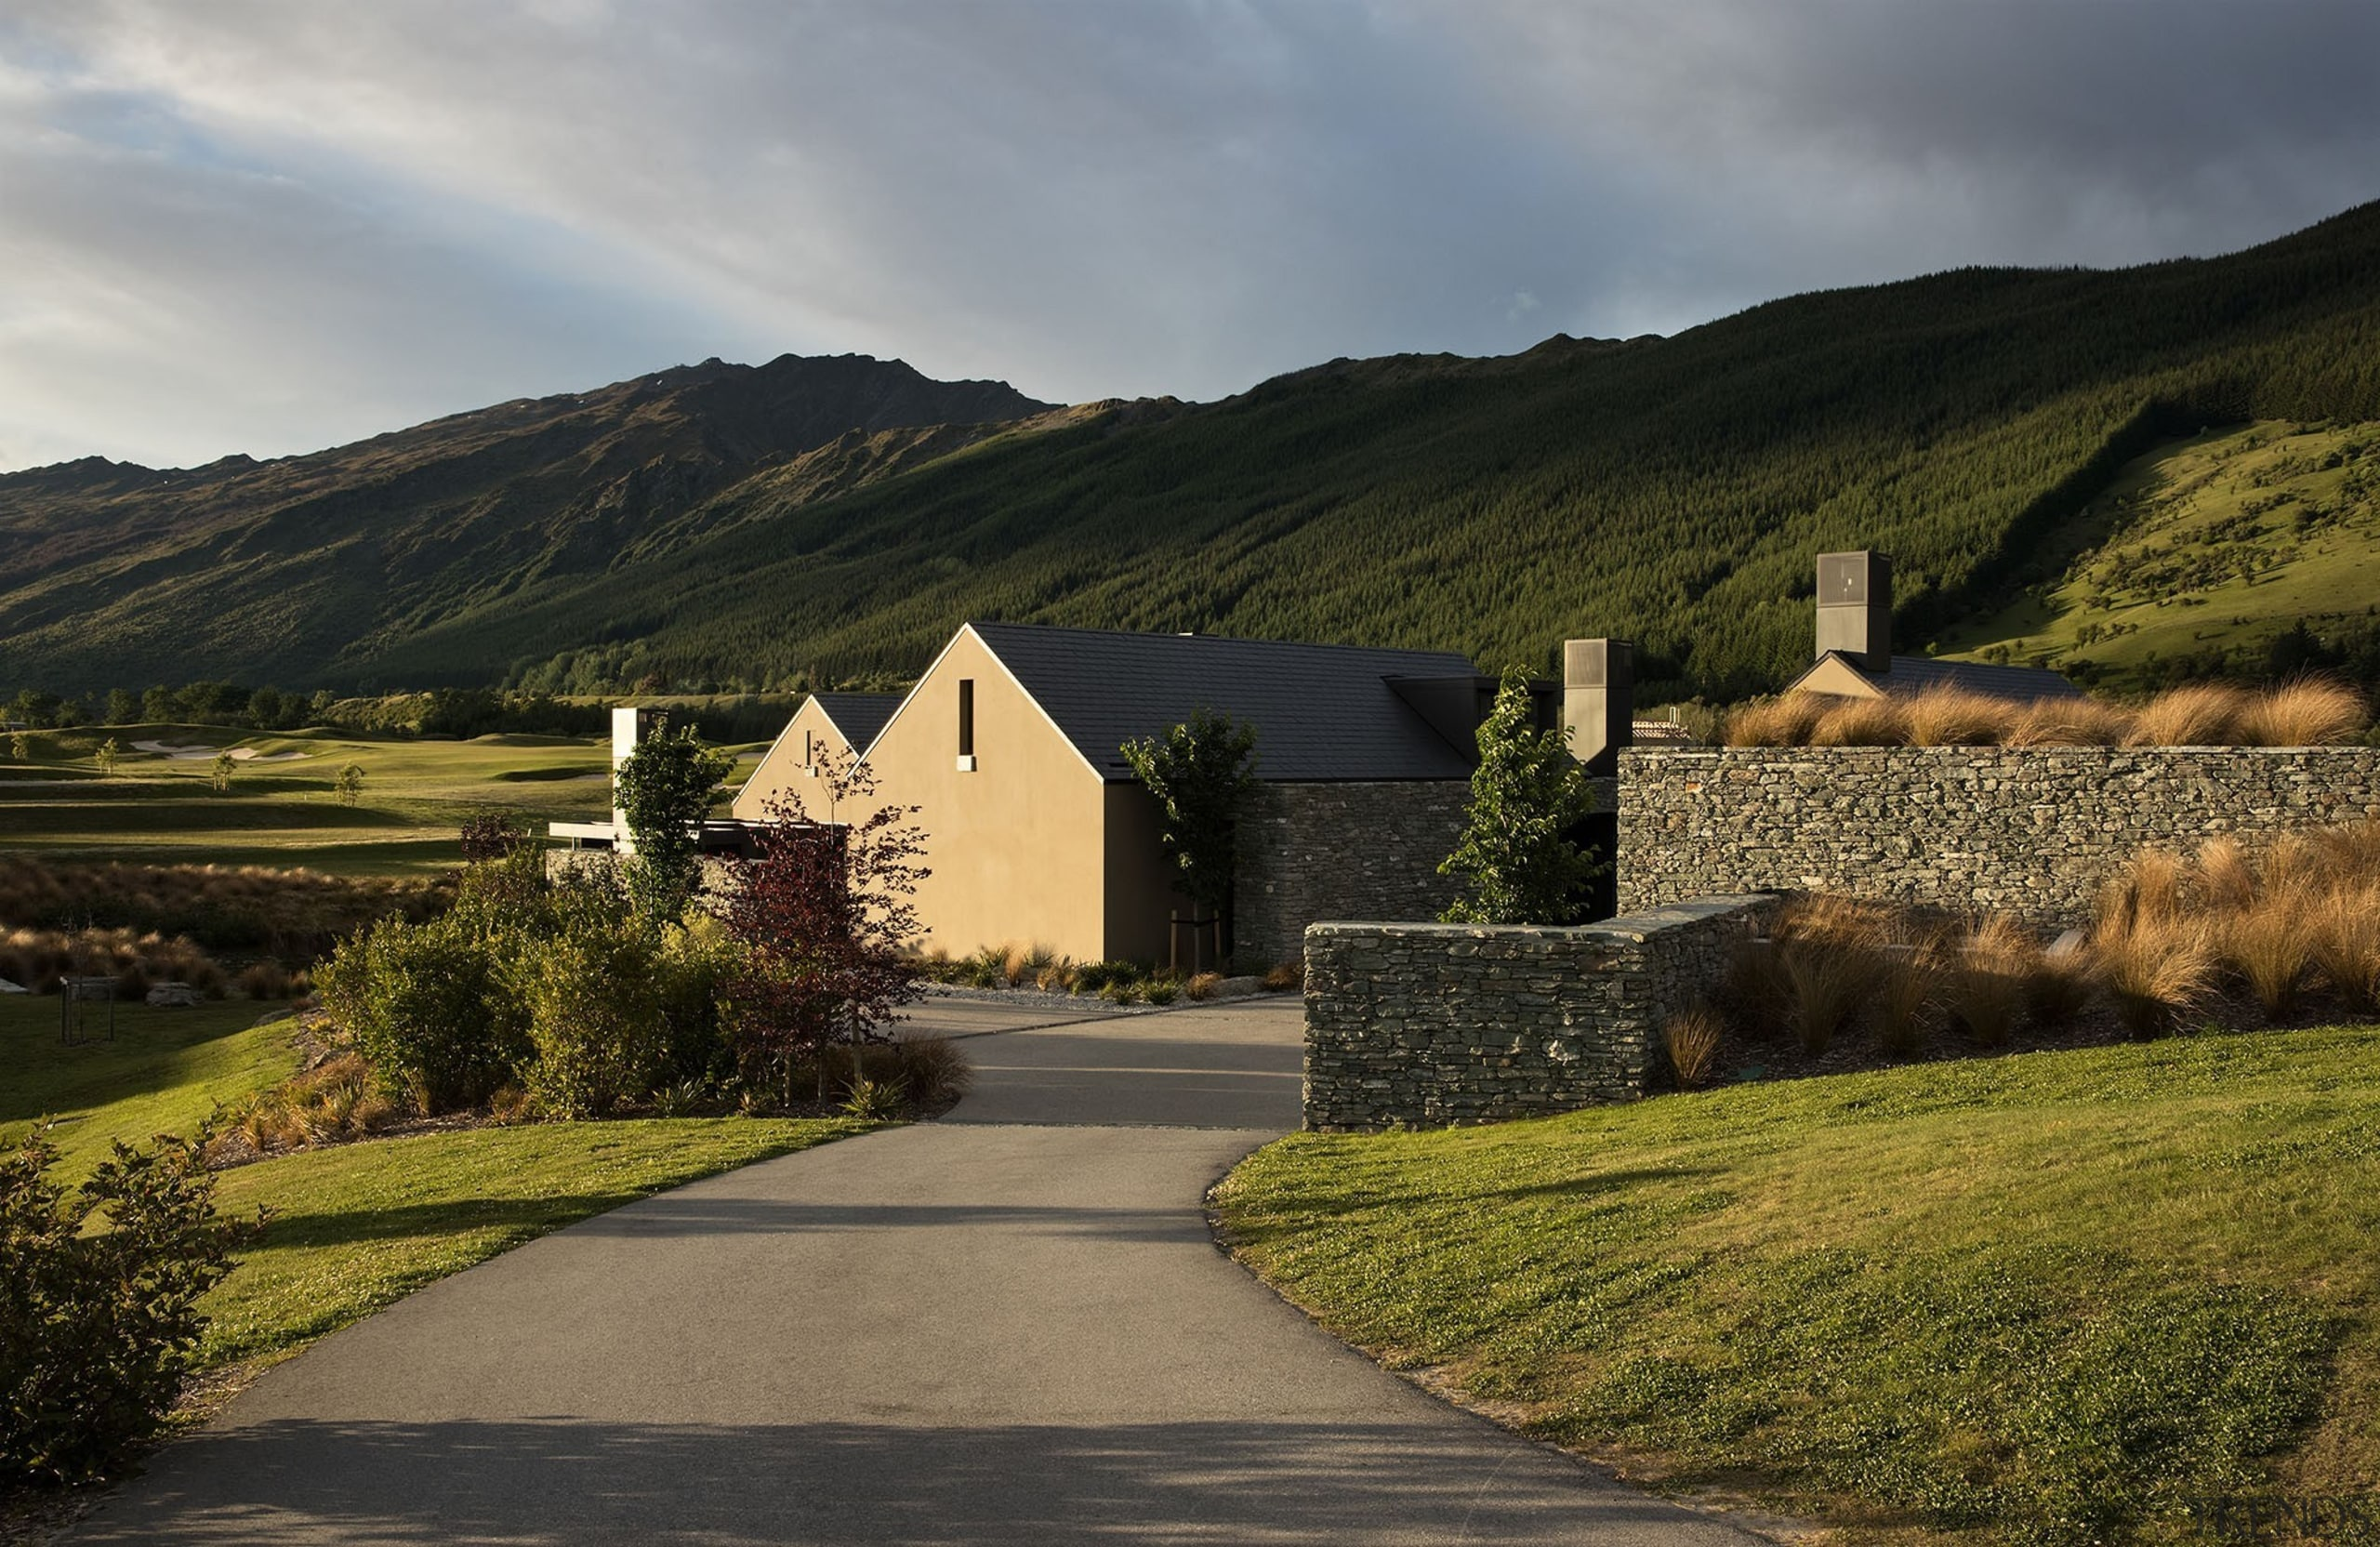 Millbrook House - Sumich Chaplin Architects - Millbrook cloud, cottage, estate, grass, highland, hill, home, house, landscape, morning, mountain, real estate, rural area, sky, sunlight, tree, village, brown, black, gray